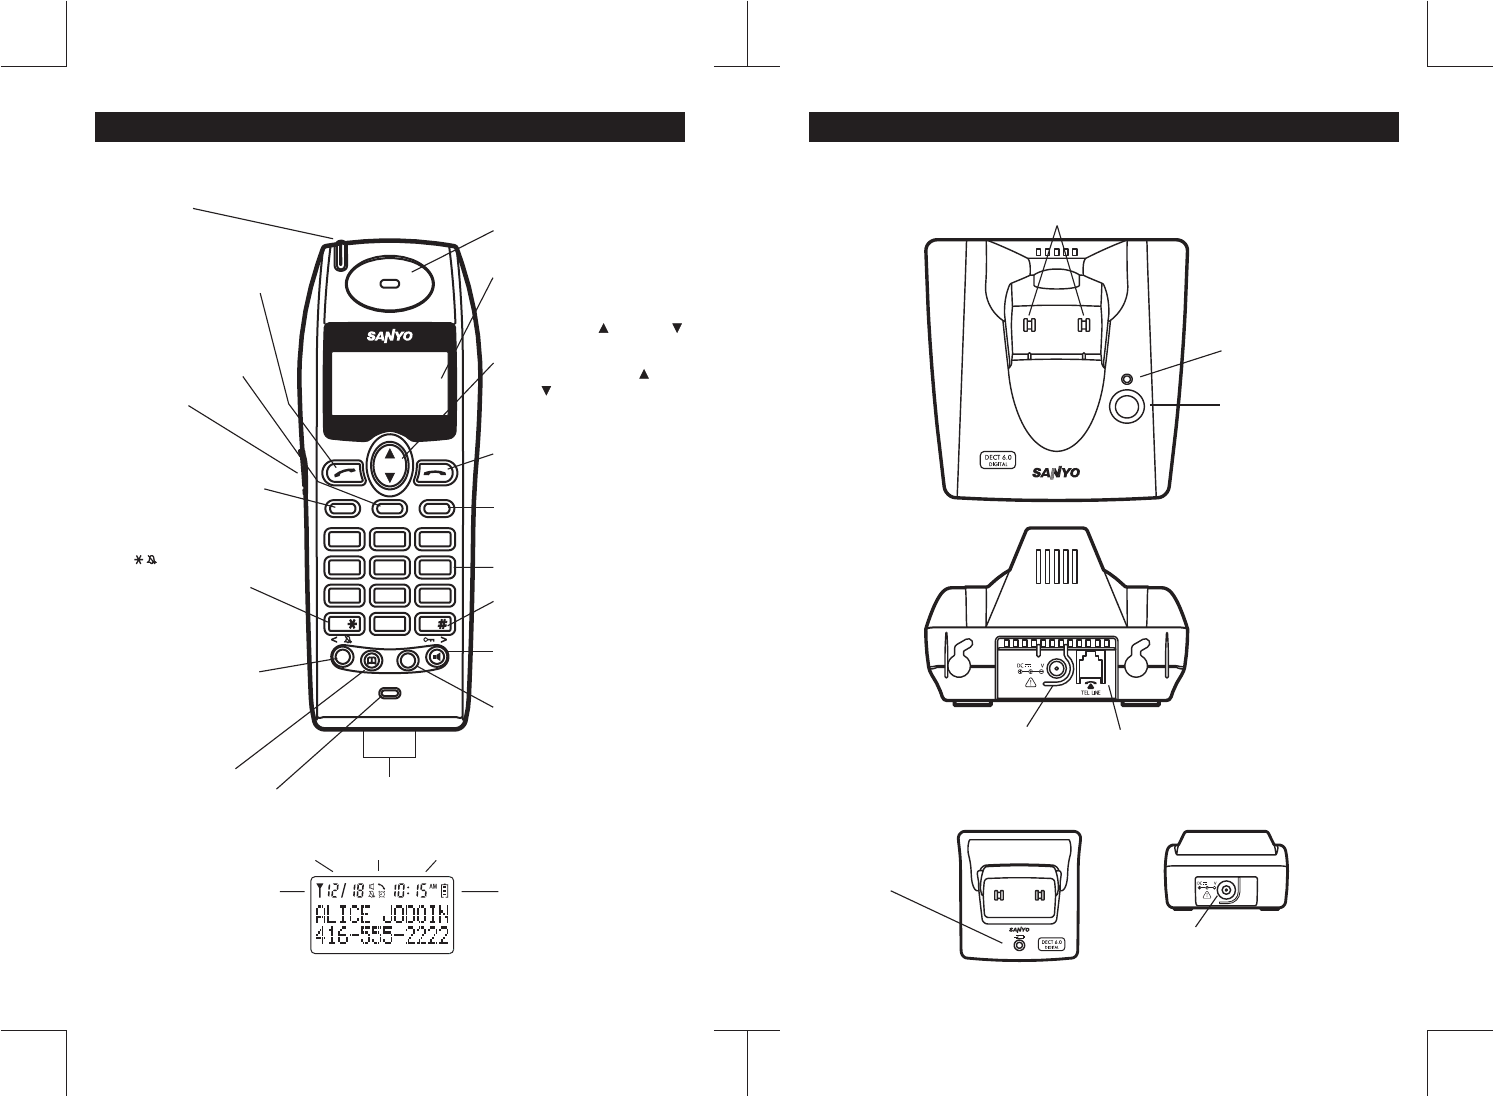 Page 5 of Sanyo Cordless Telephone CLT-D6220 User Guide